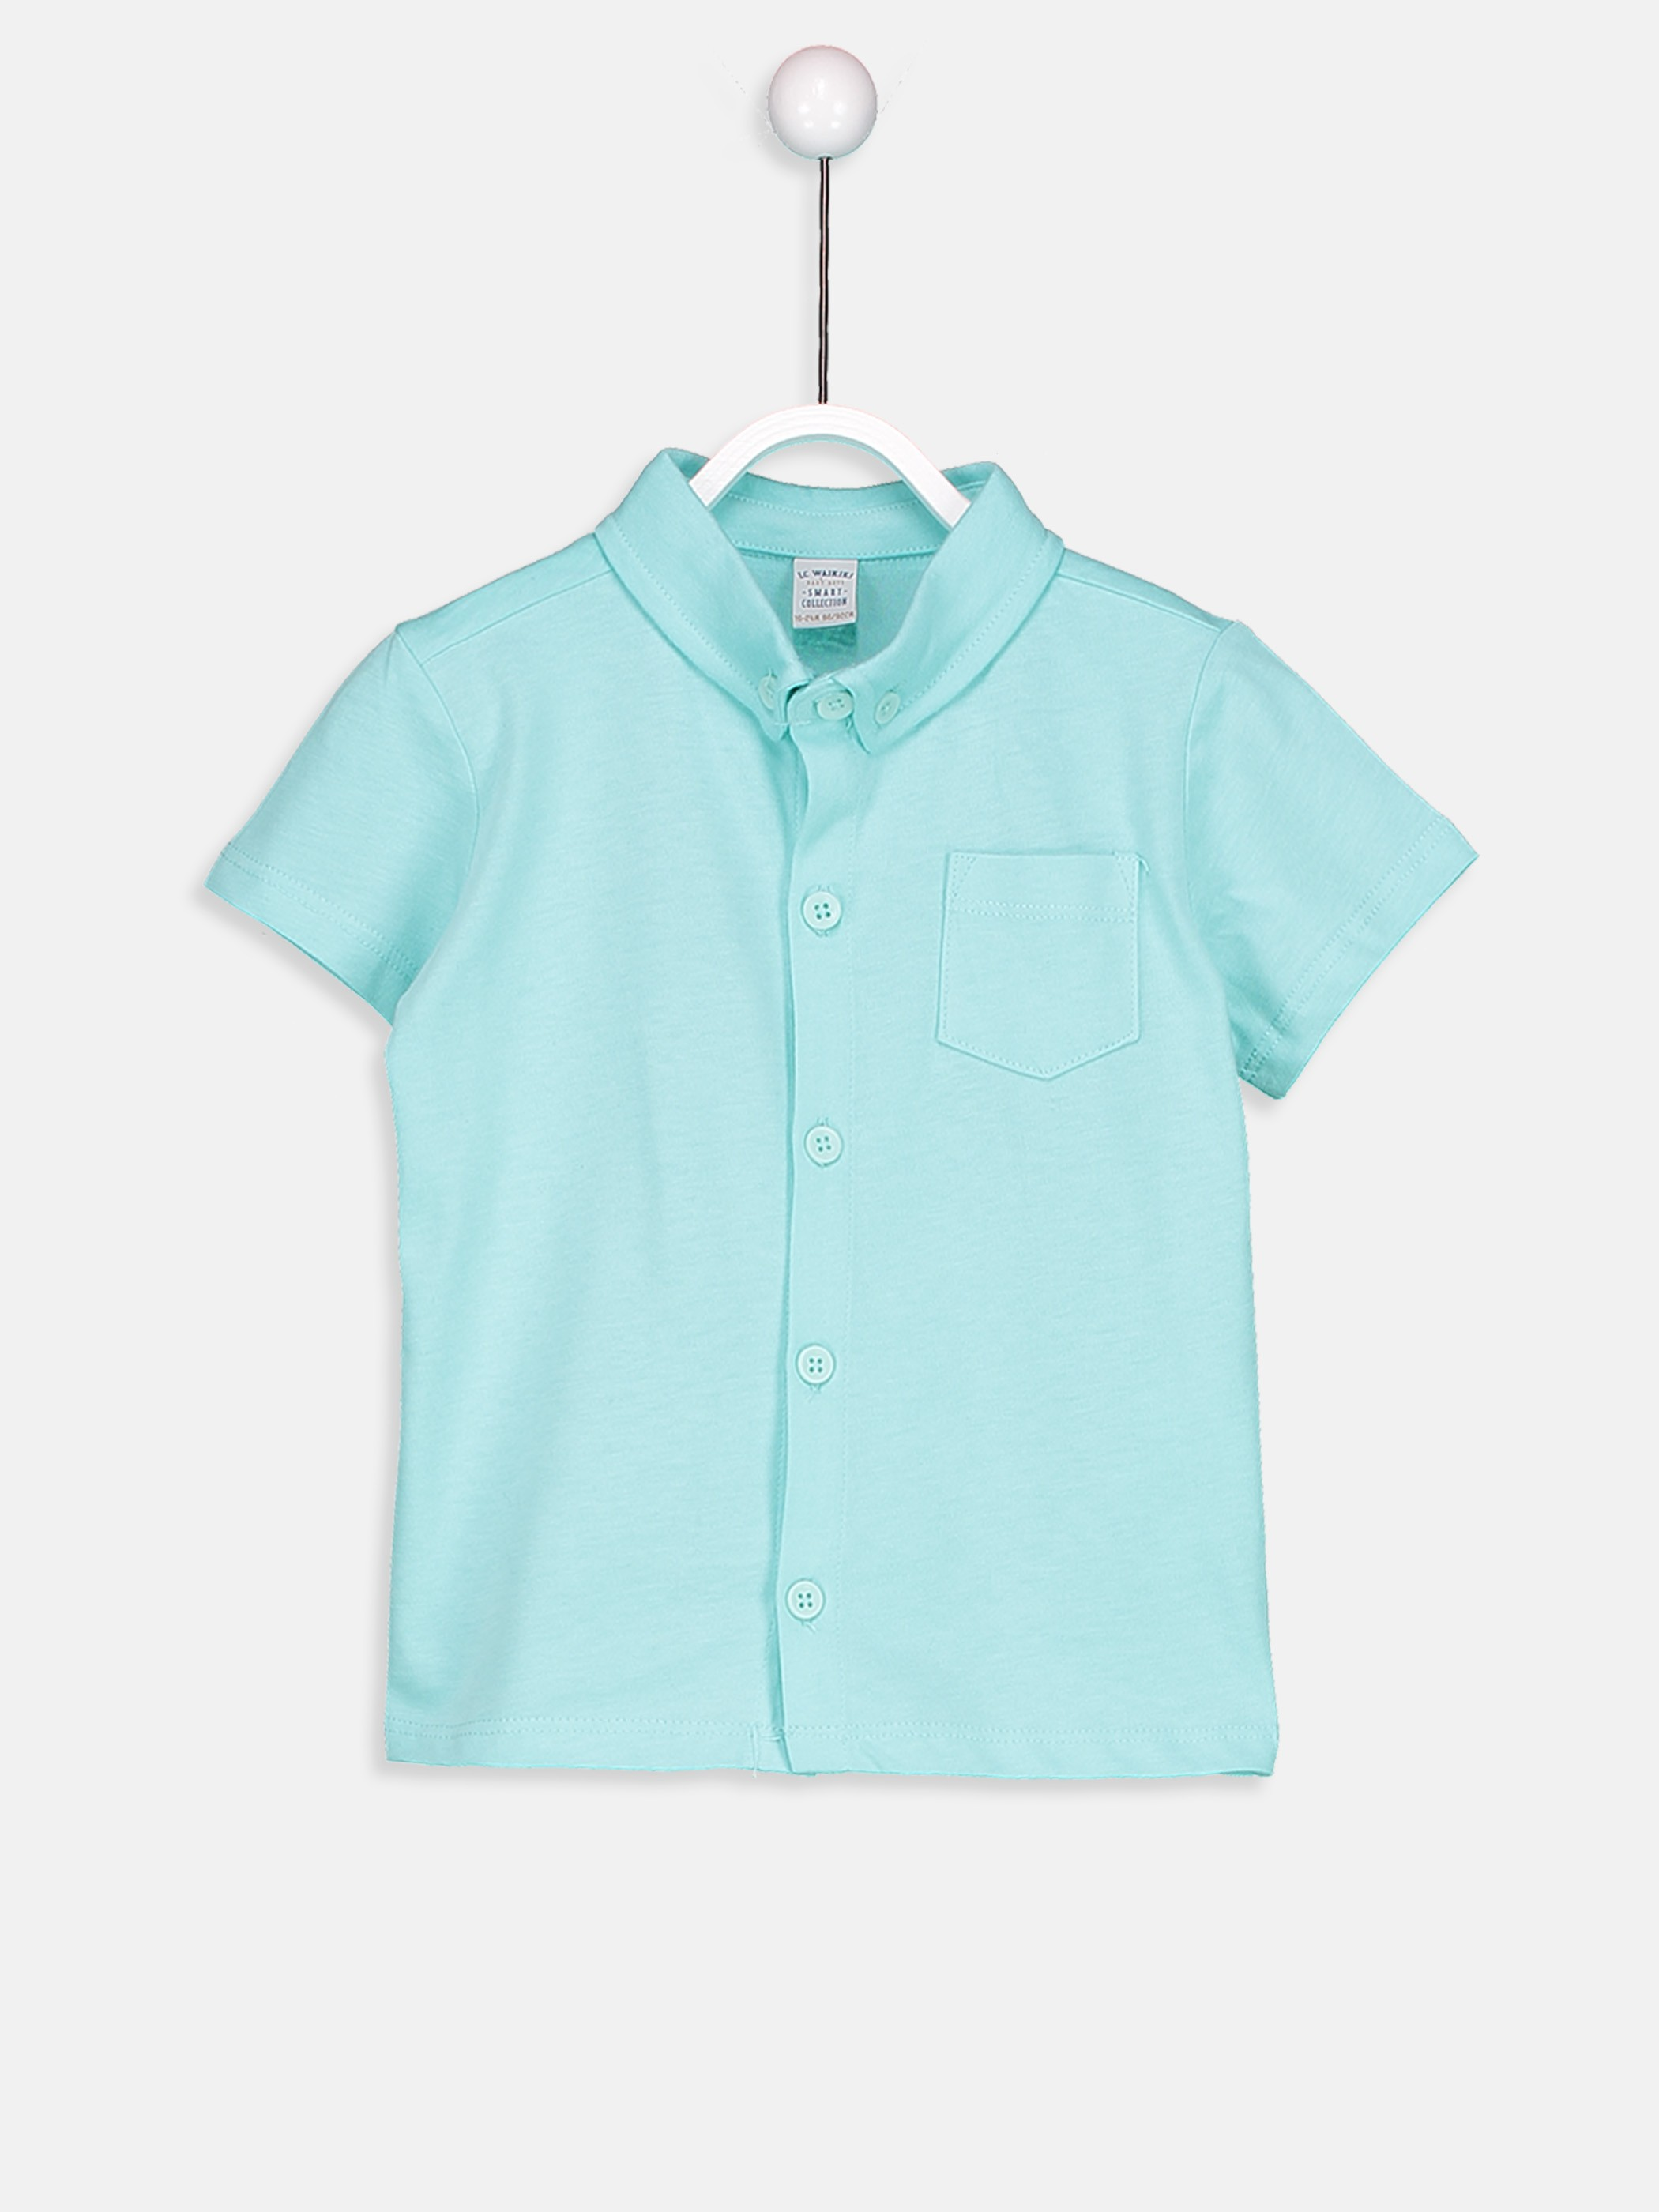 TURQUOISE - T-Shirt - 8SI753Z1